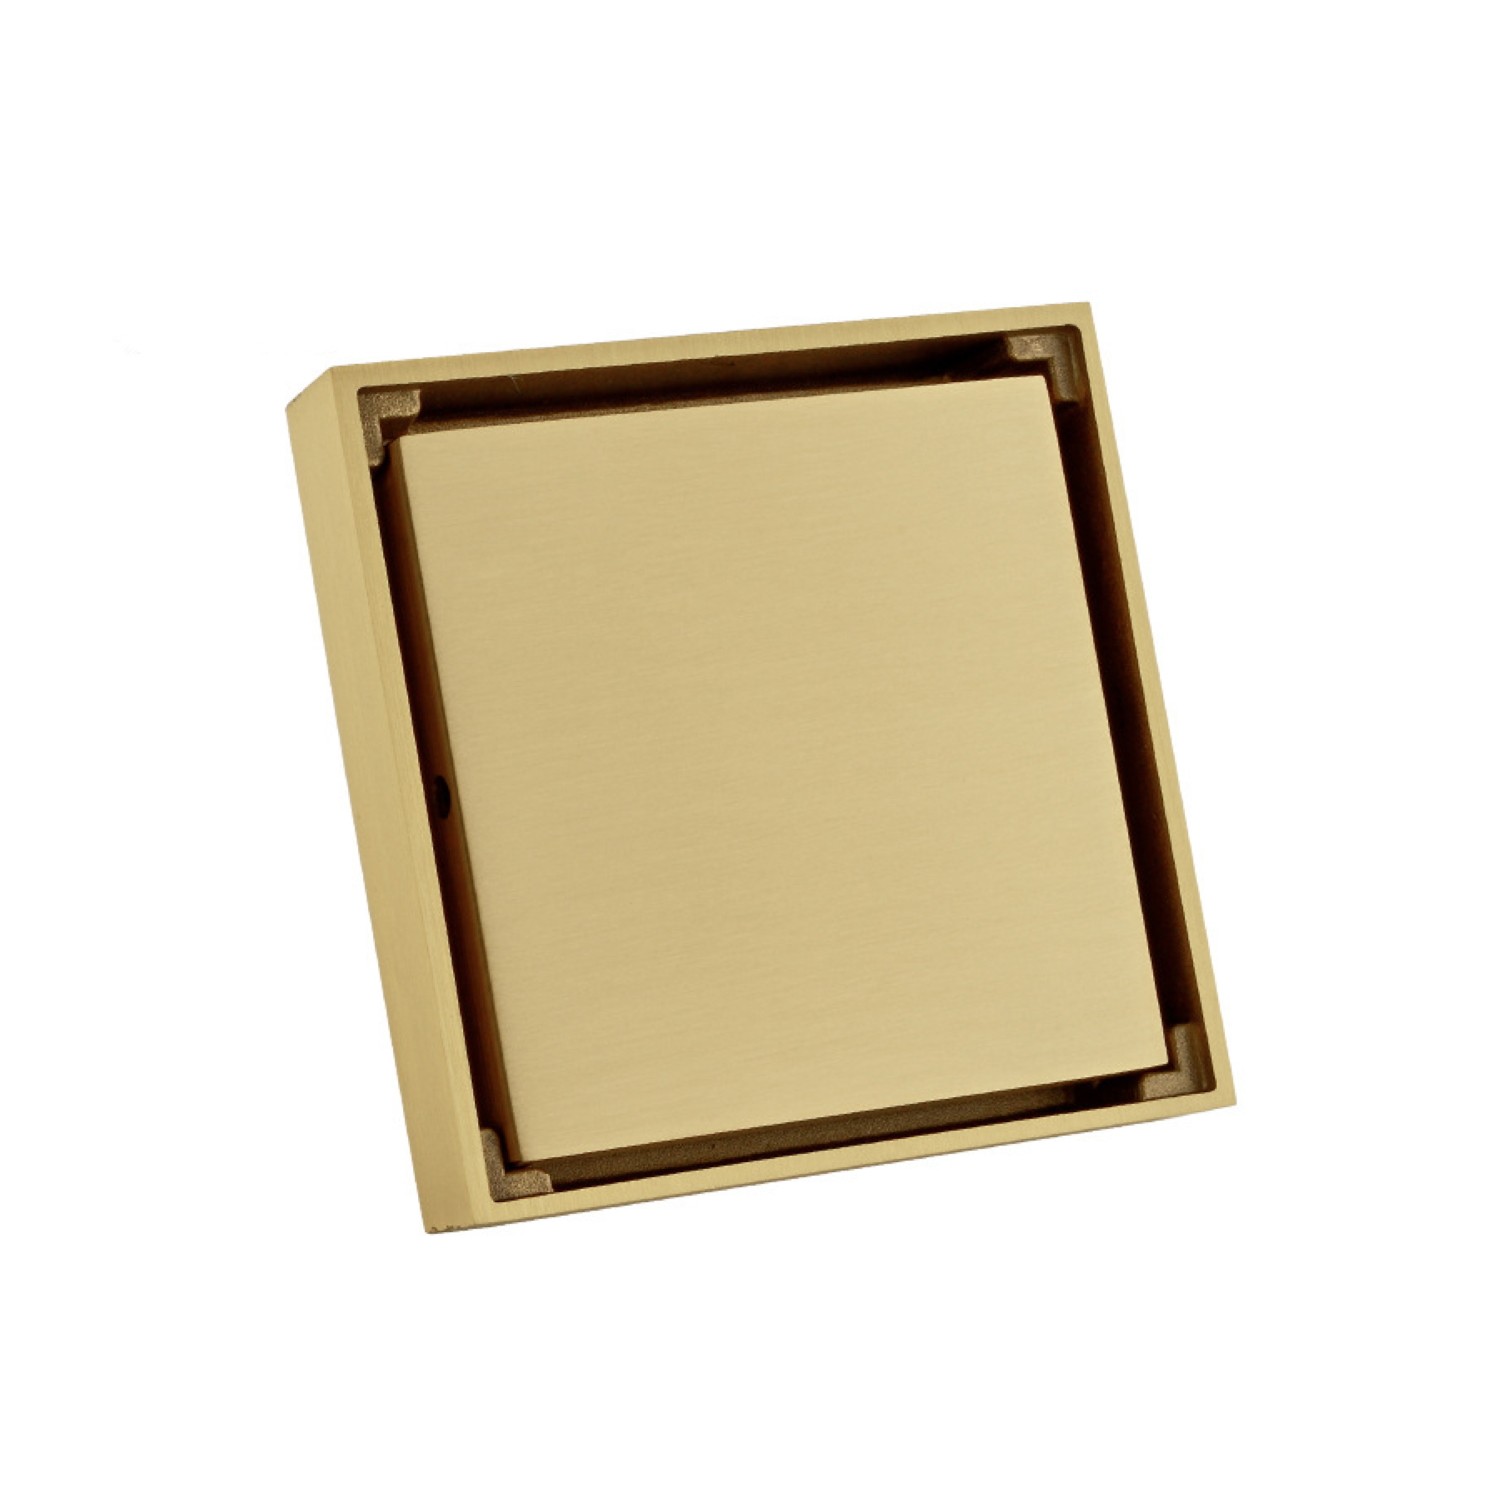 Doucheput Massief Messing 10x10 cm Goud